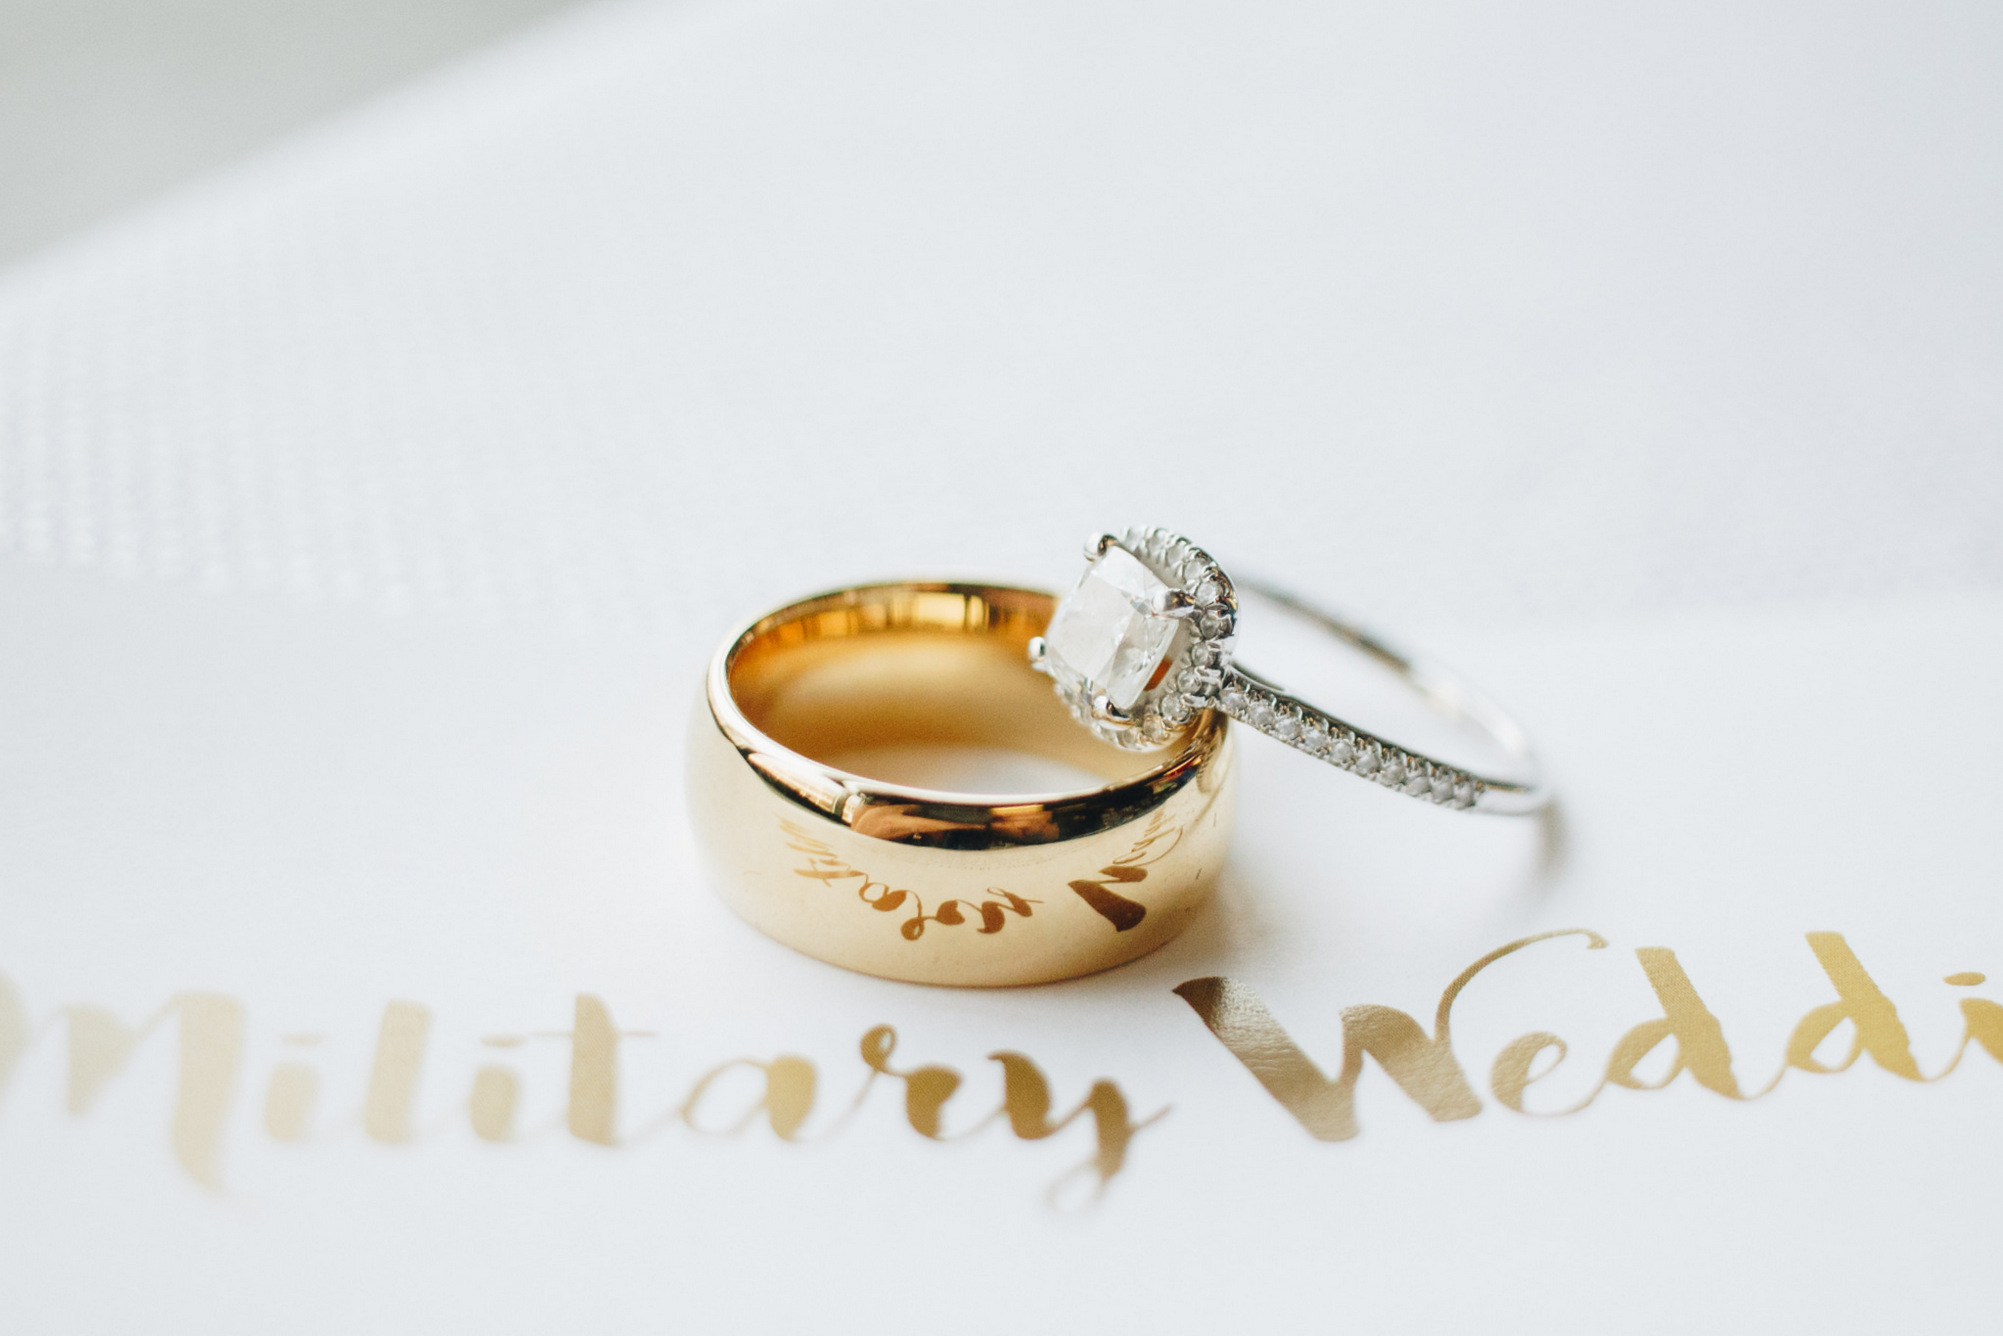 military wedding (ring shot) in bellingham, washington